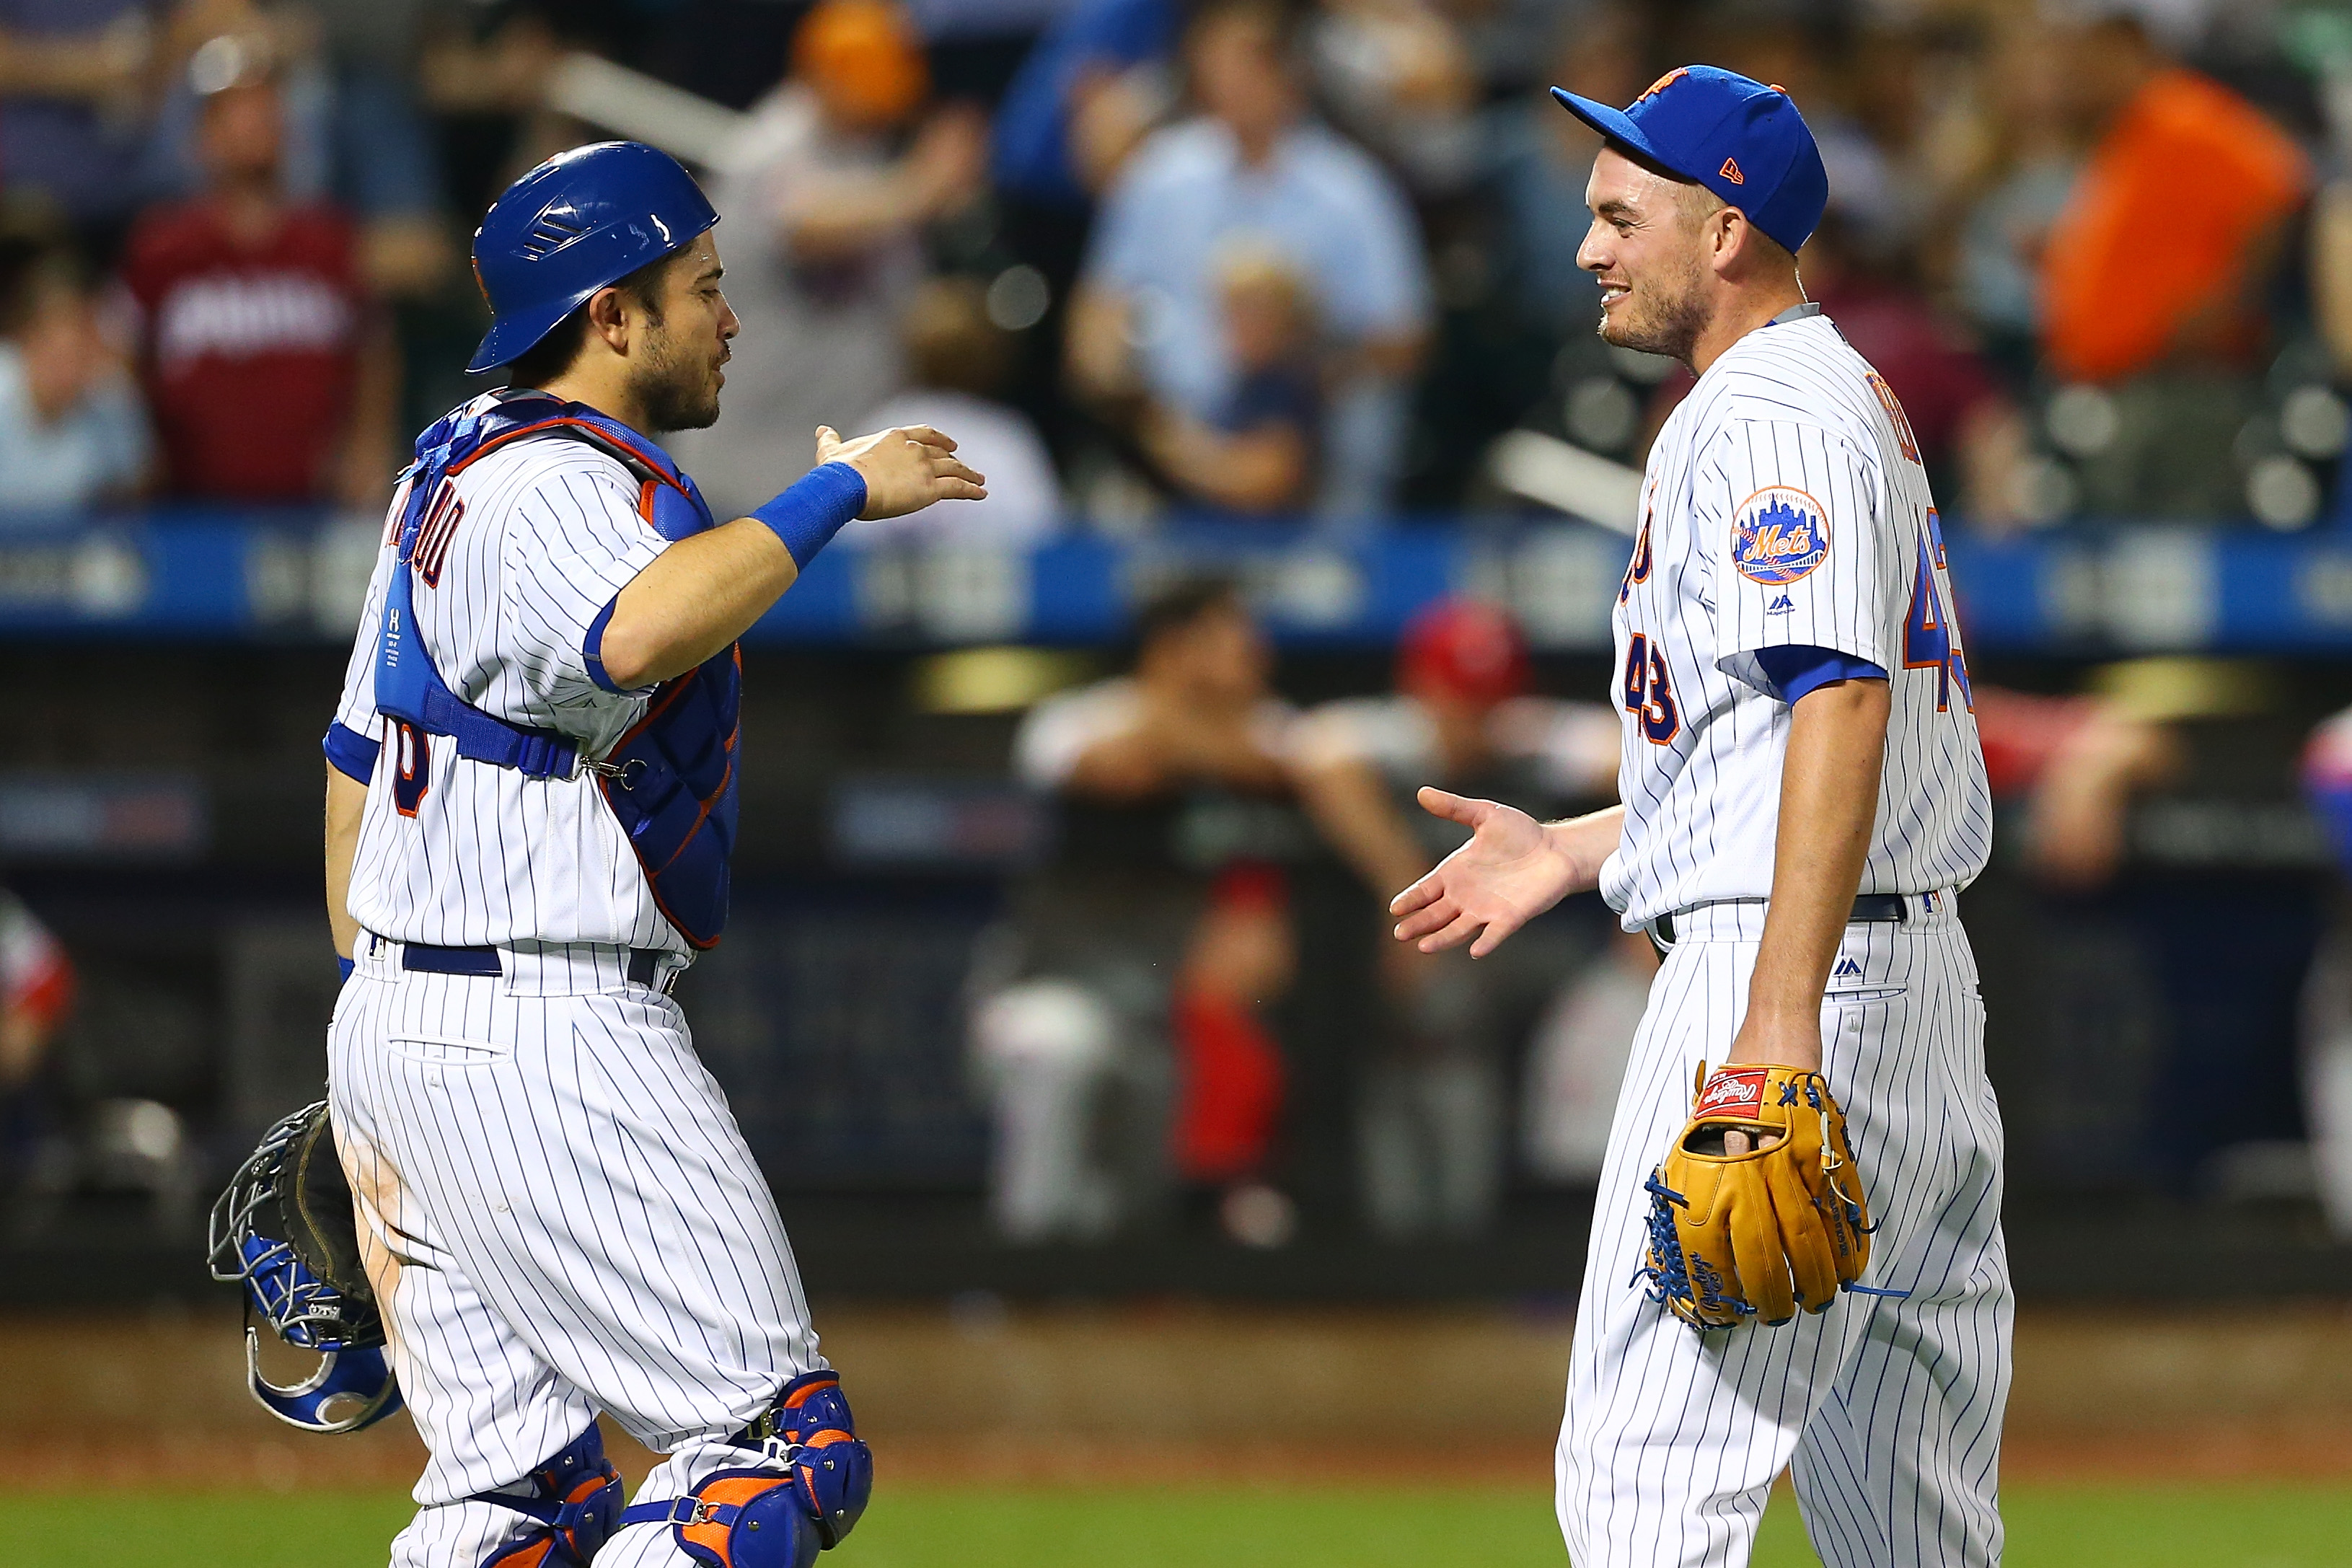 Nationals win pitchers' duel vs. Mets thanks to Ryan Raburn walkoff